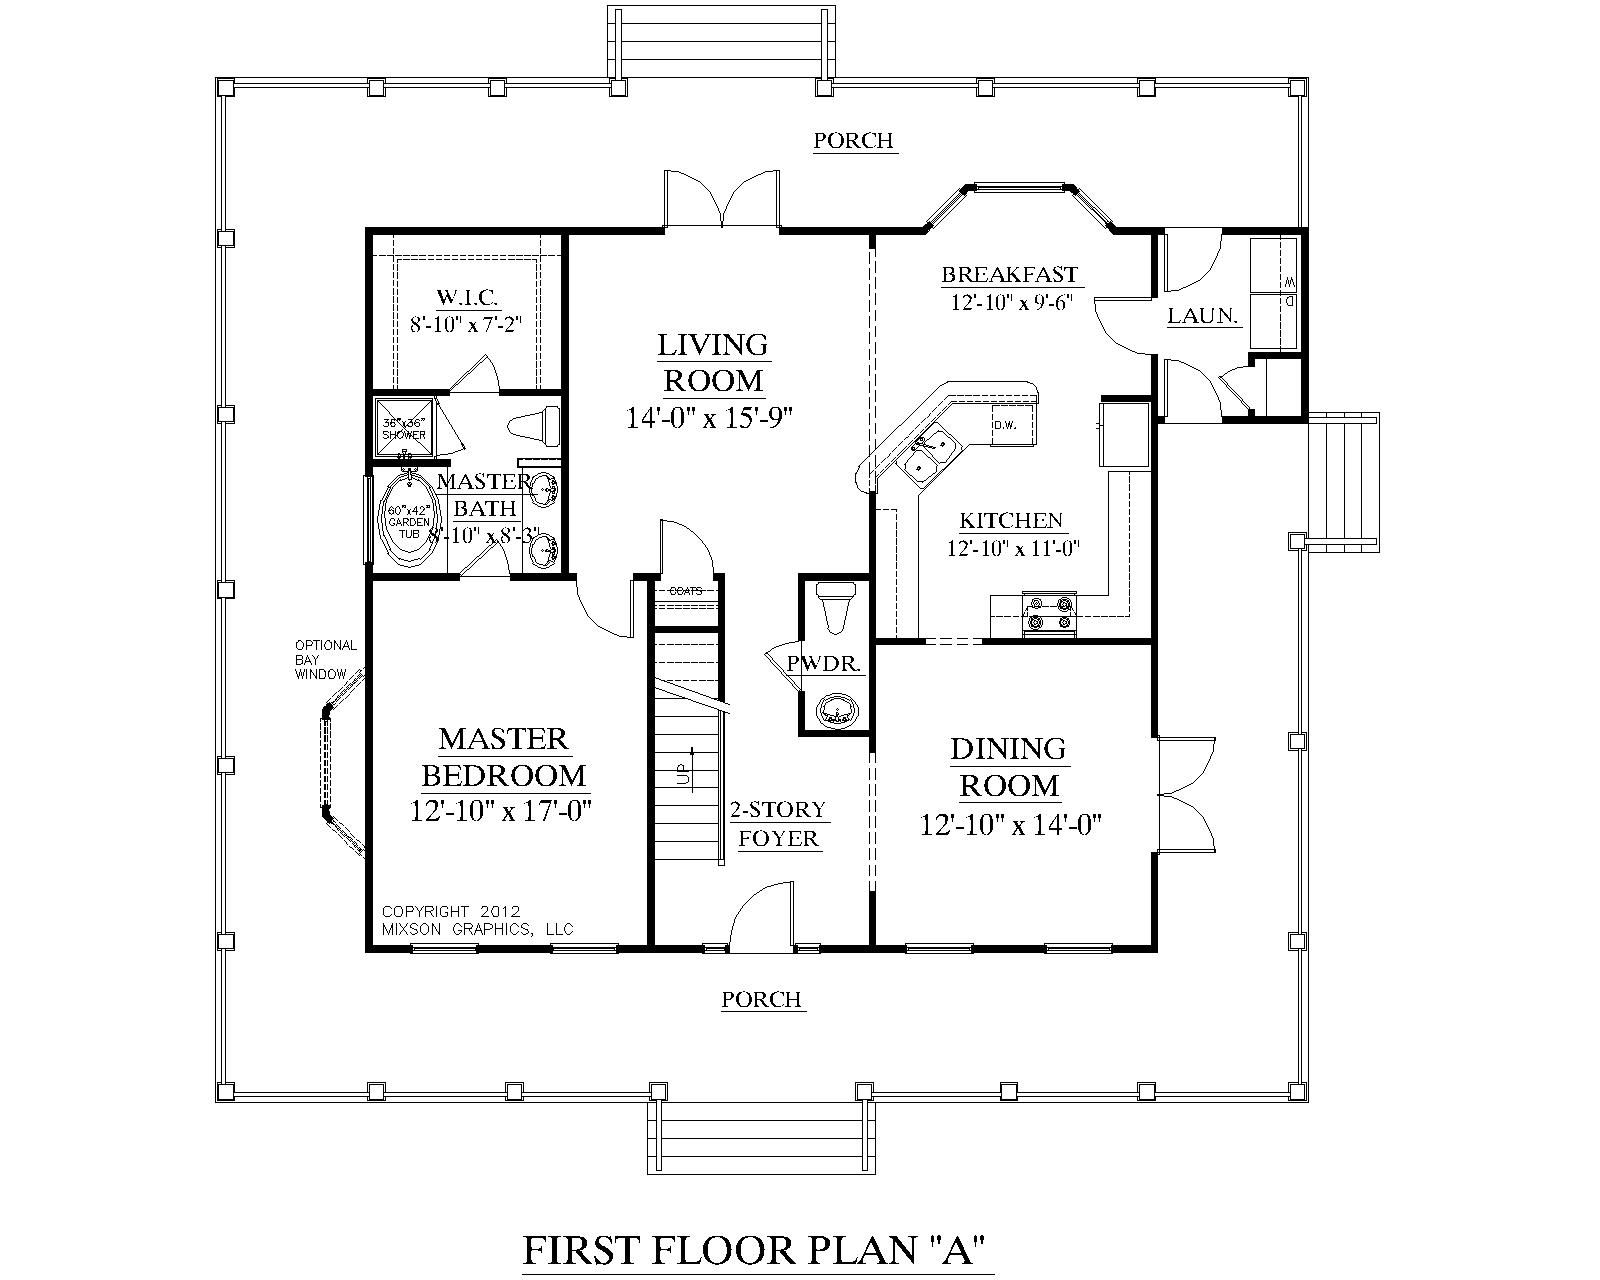 Small One Bedroom House Plans Traditional Story House Plan Free Floor Plans For One Story